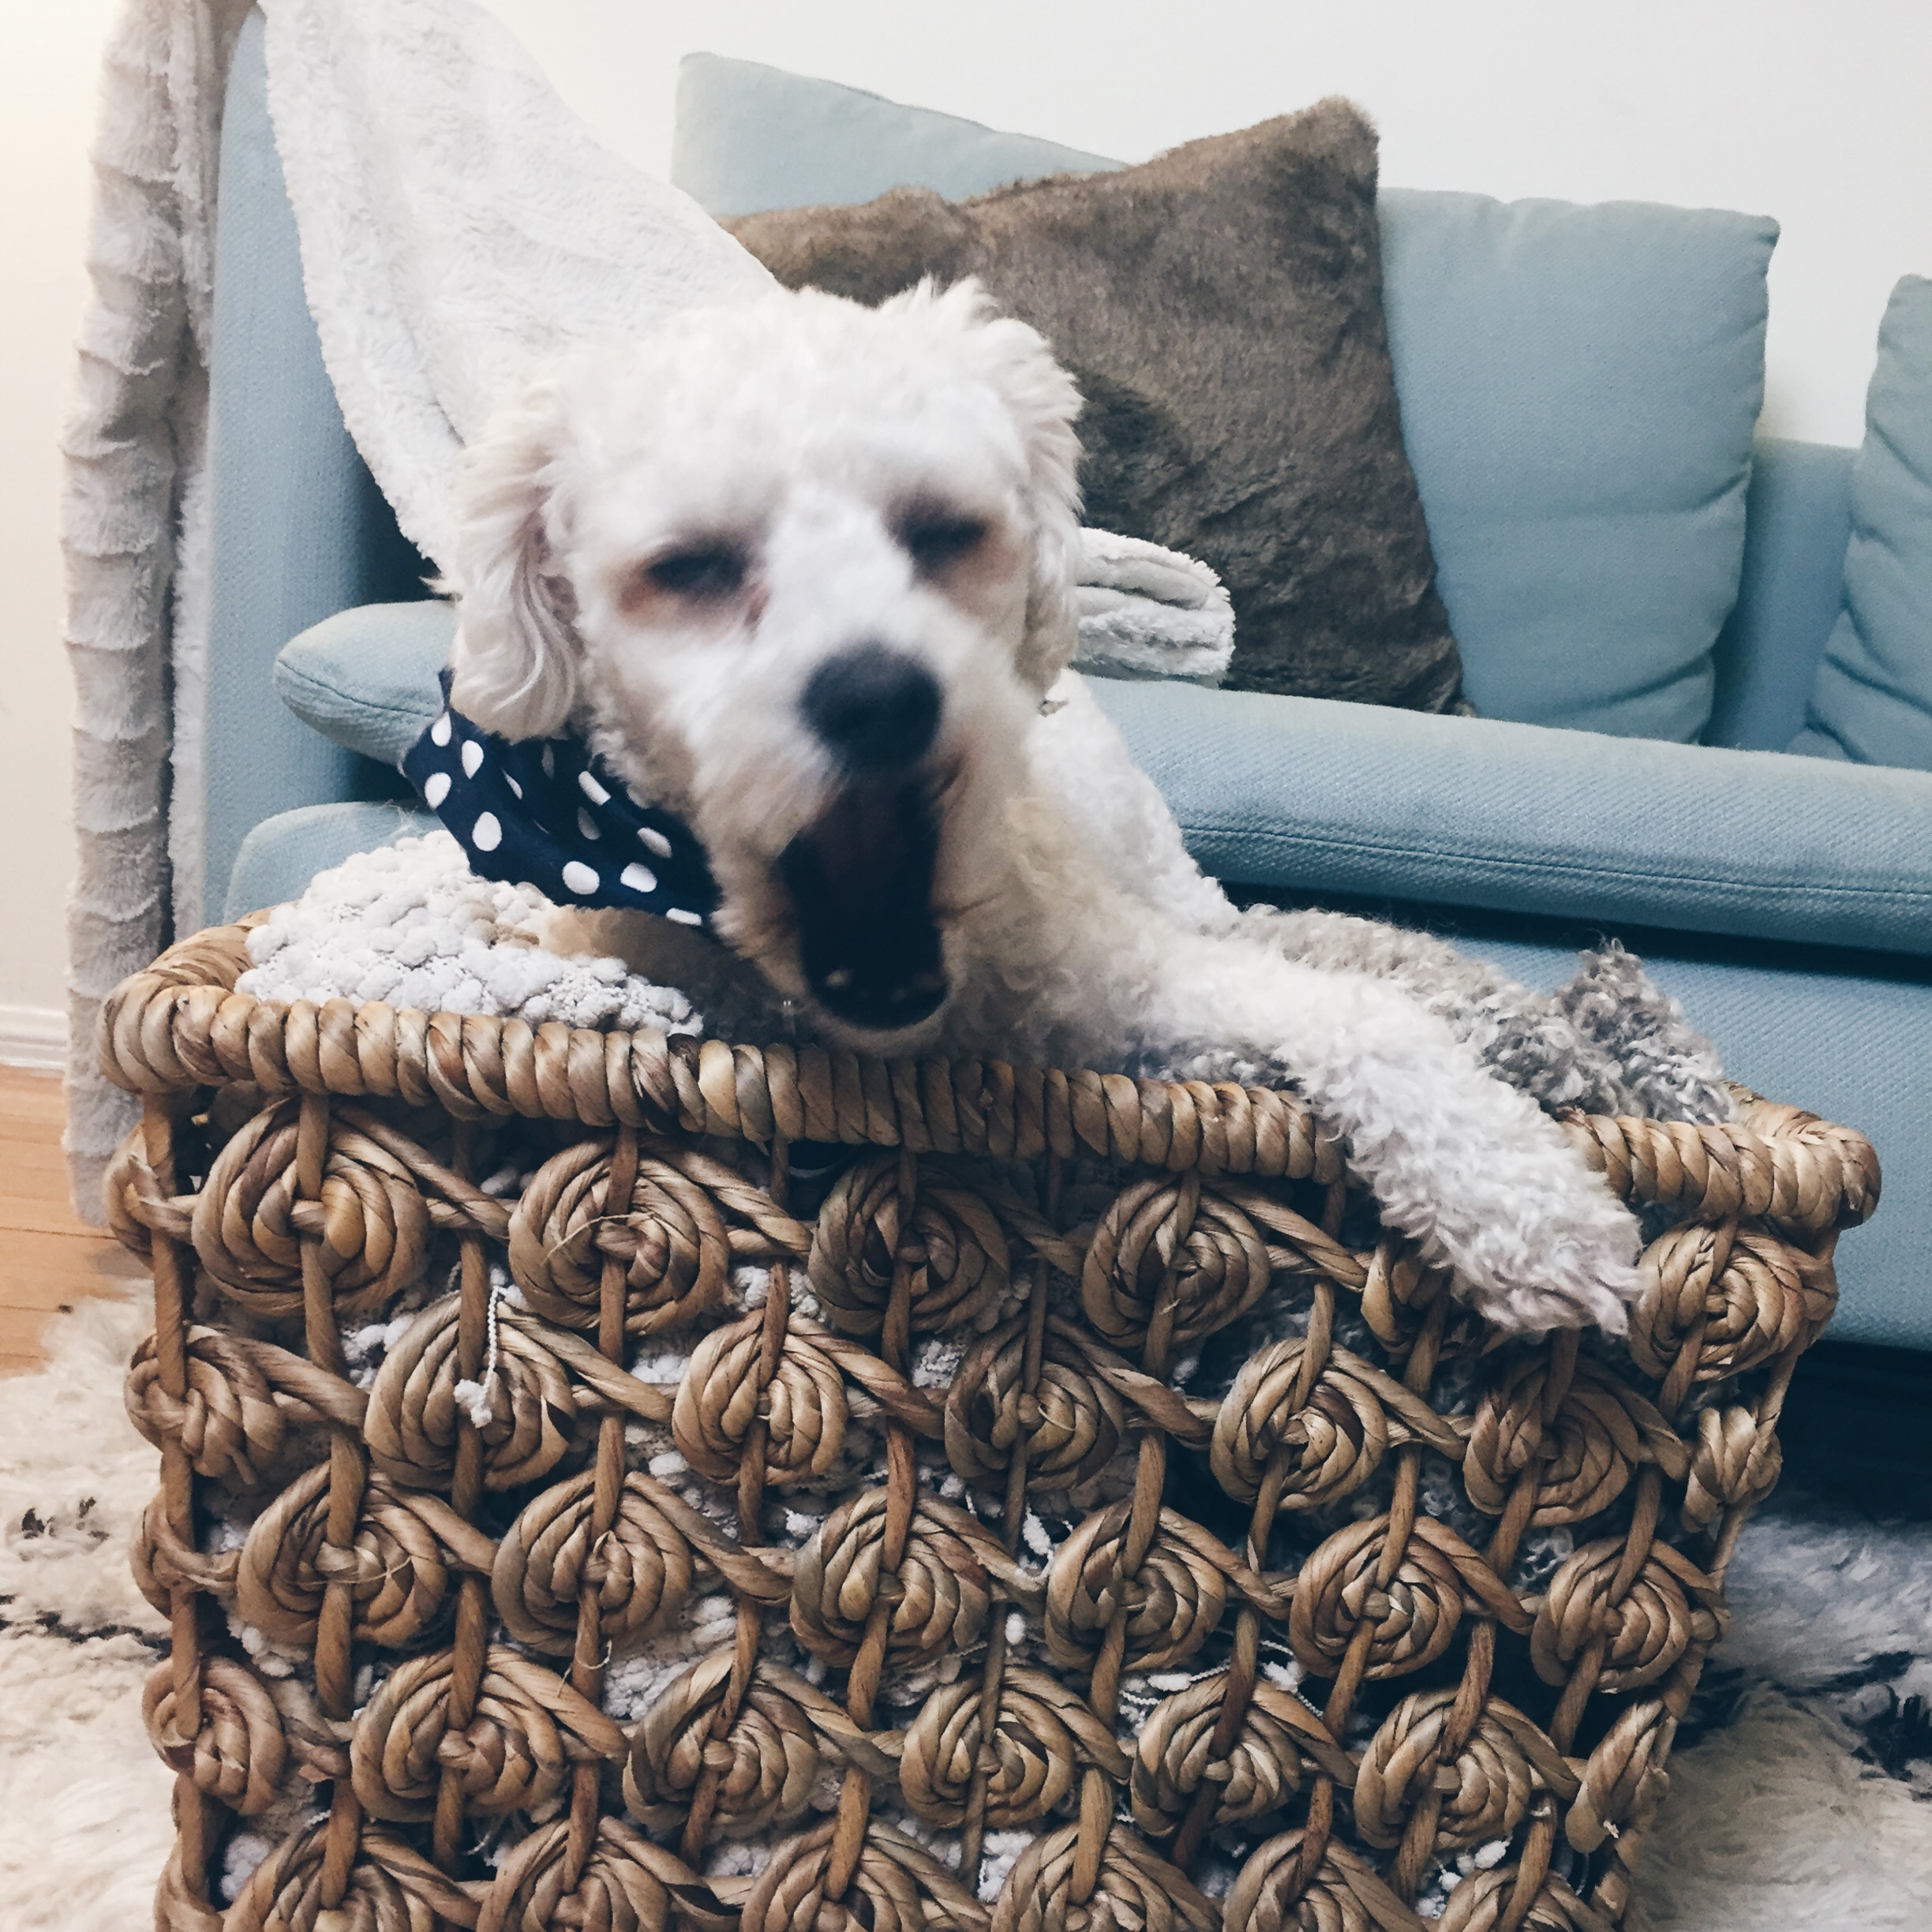 A basket full of cozy blankets. This is the time of year when snuggling is all the rage. I am very happy to have this little fur child to do just that with.